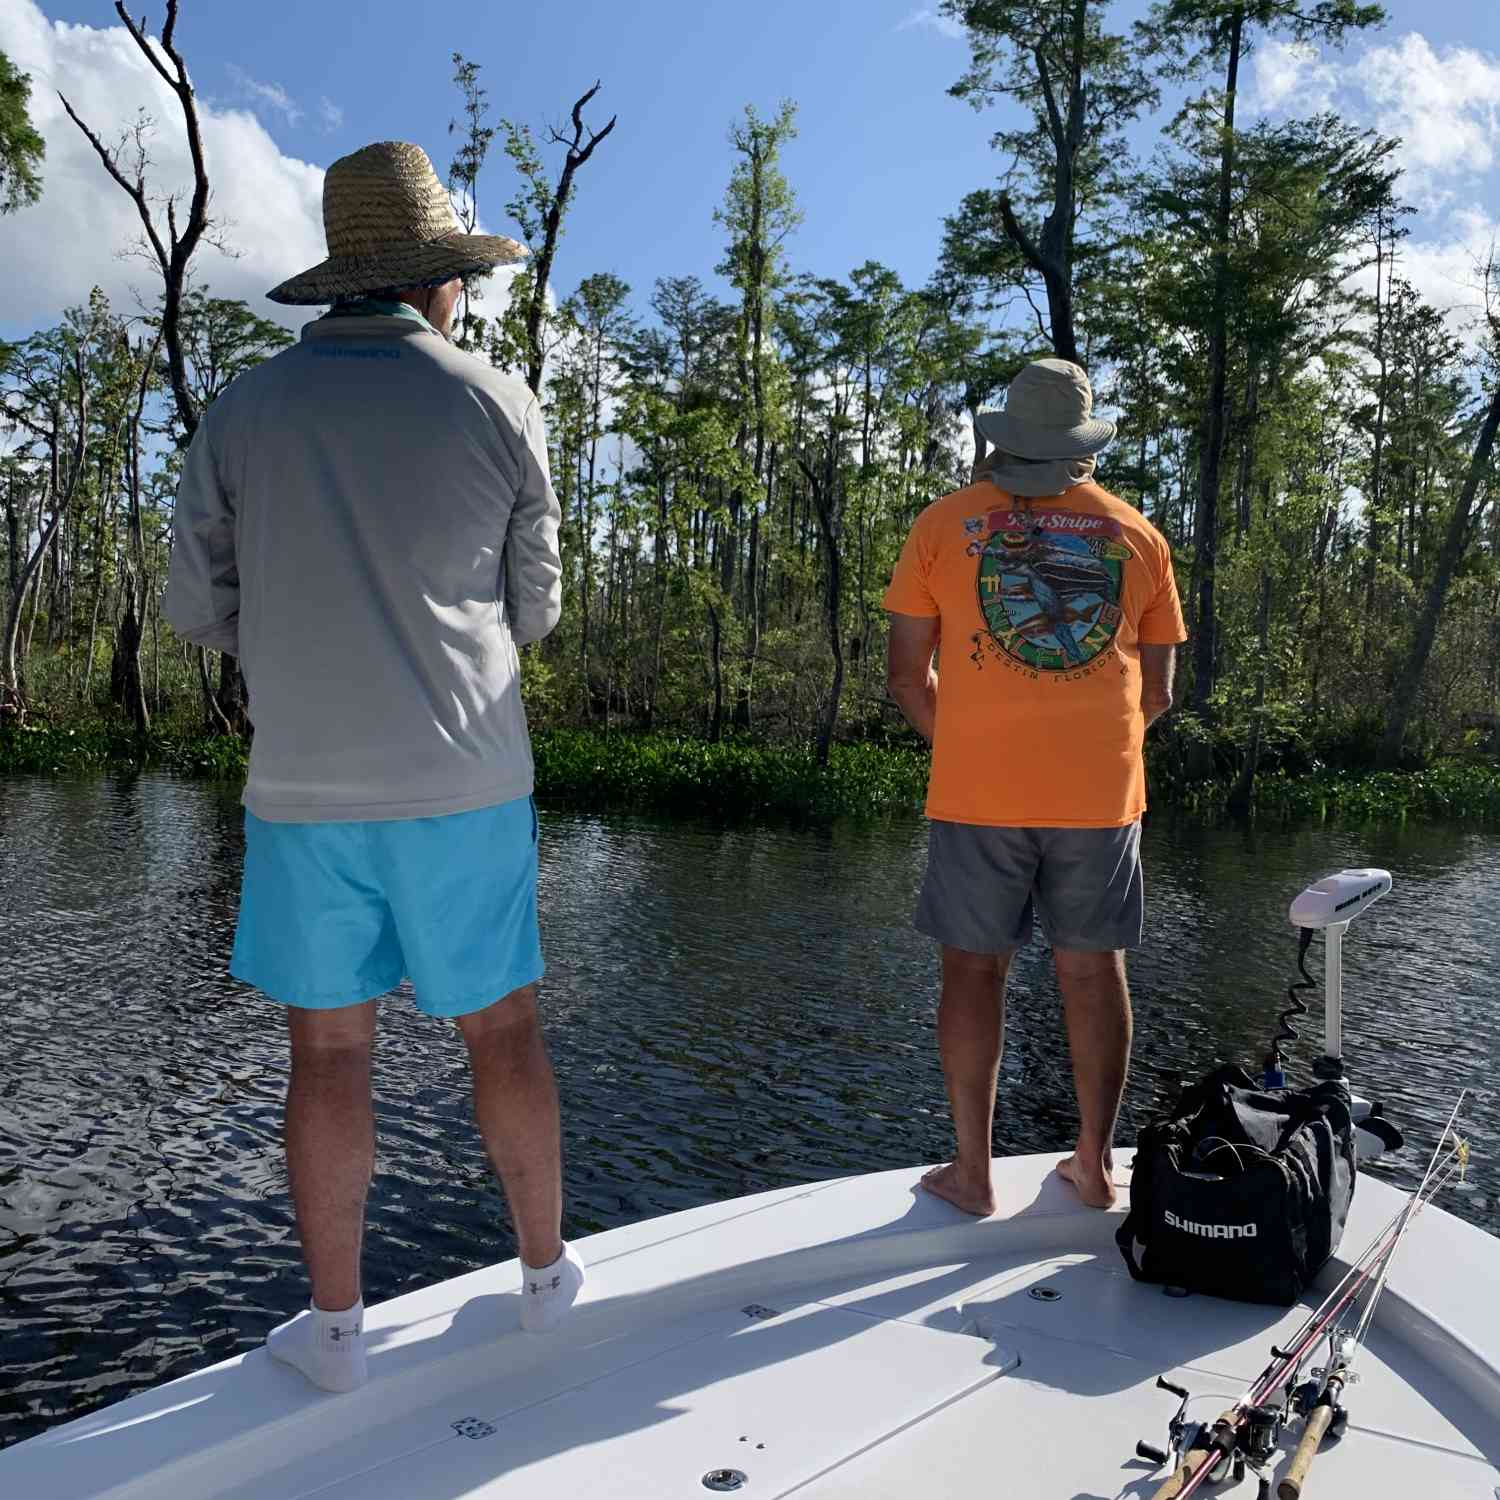 Title: Just another day of fishing but in a lake. - On board their Sportsman Masters 247 Bay Boat - Location: Lake between Port St Joe, FL & Apalachicola, FL. Participating in the Photo Contest #SportsmanApril2020